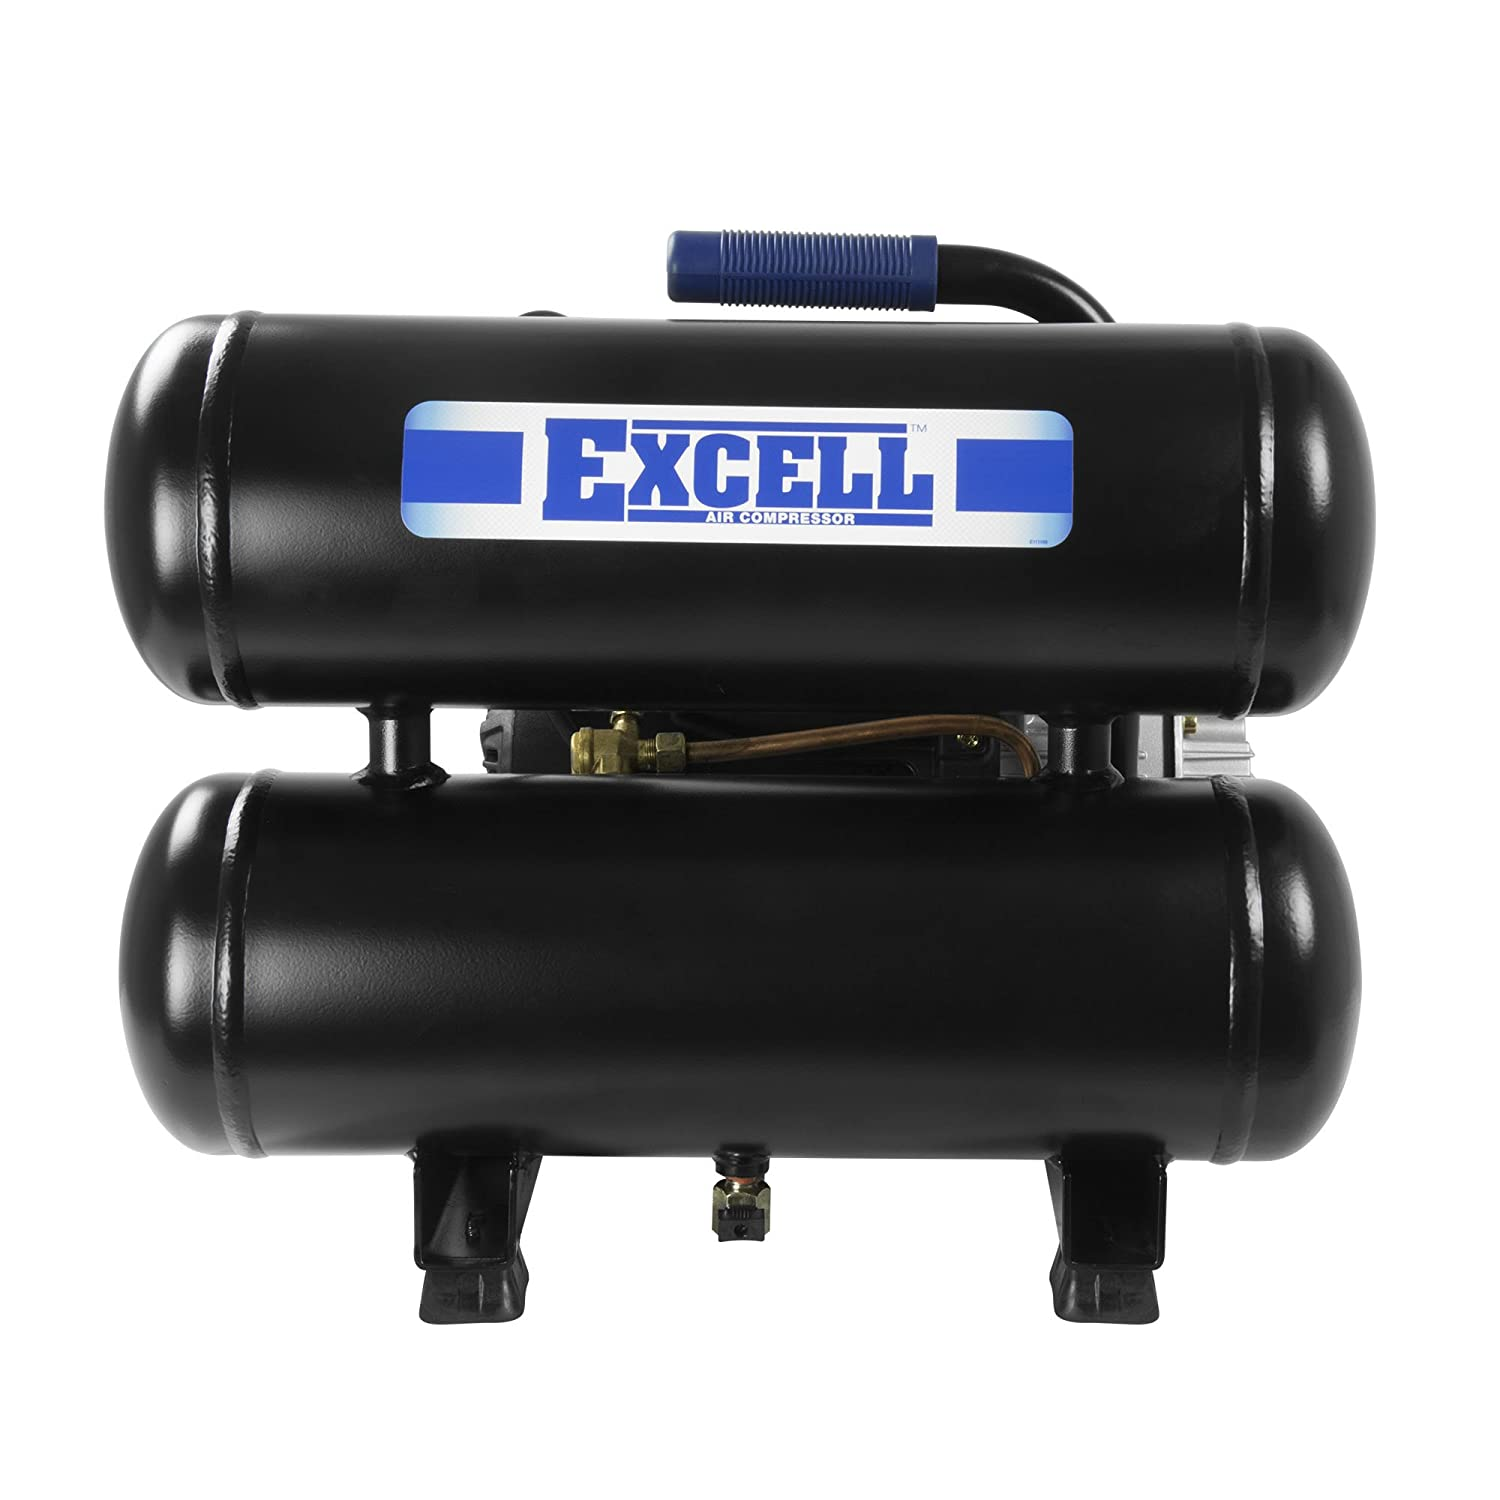 Excell L24SPE Excel Air Compressor EXCELL Air Compressors